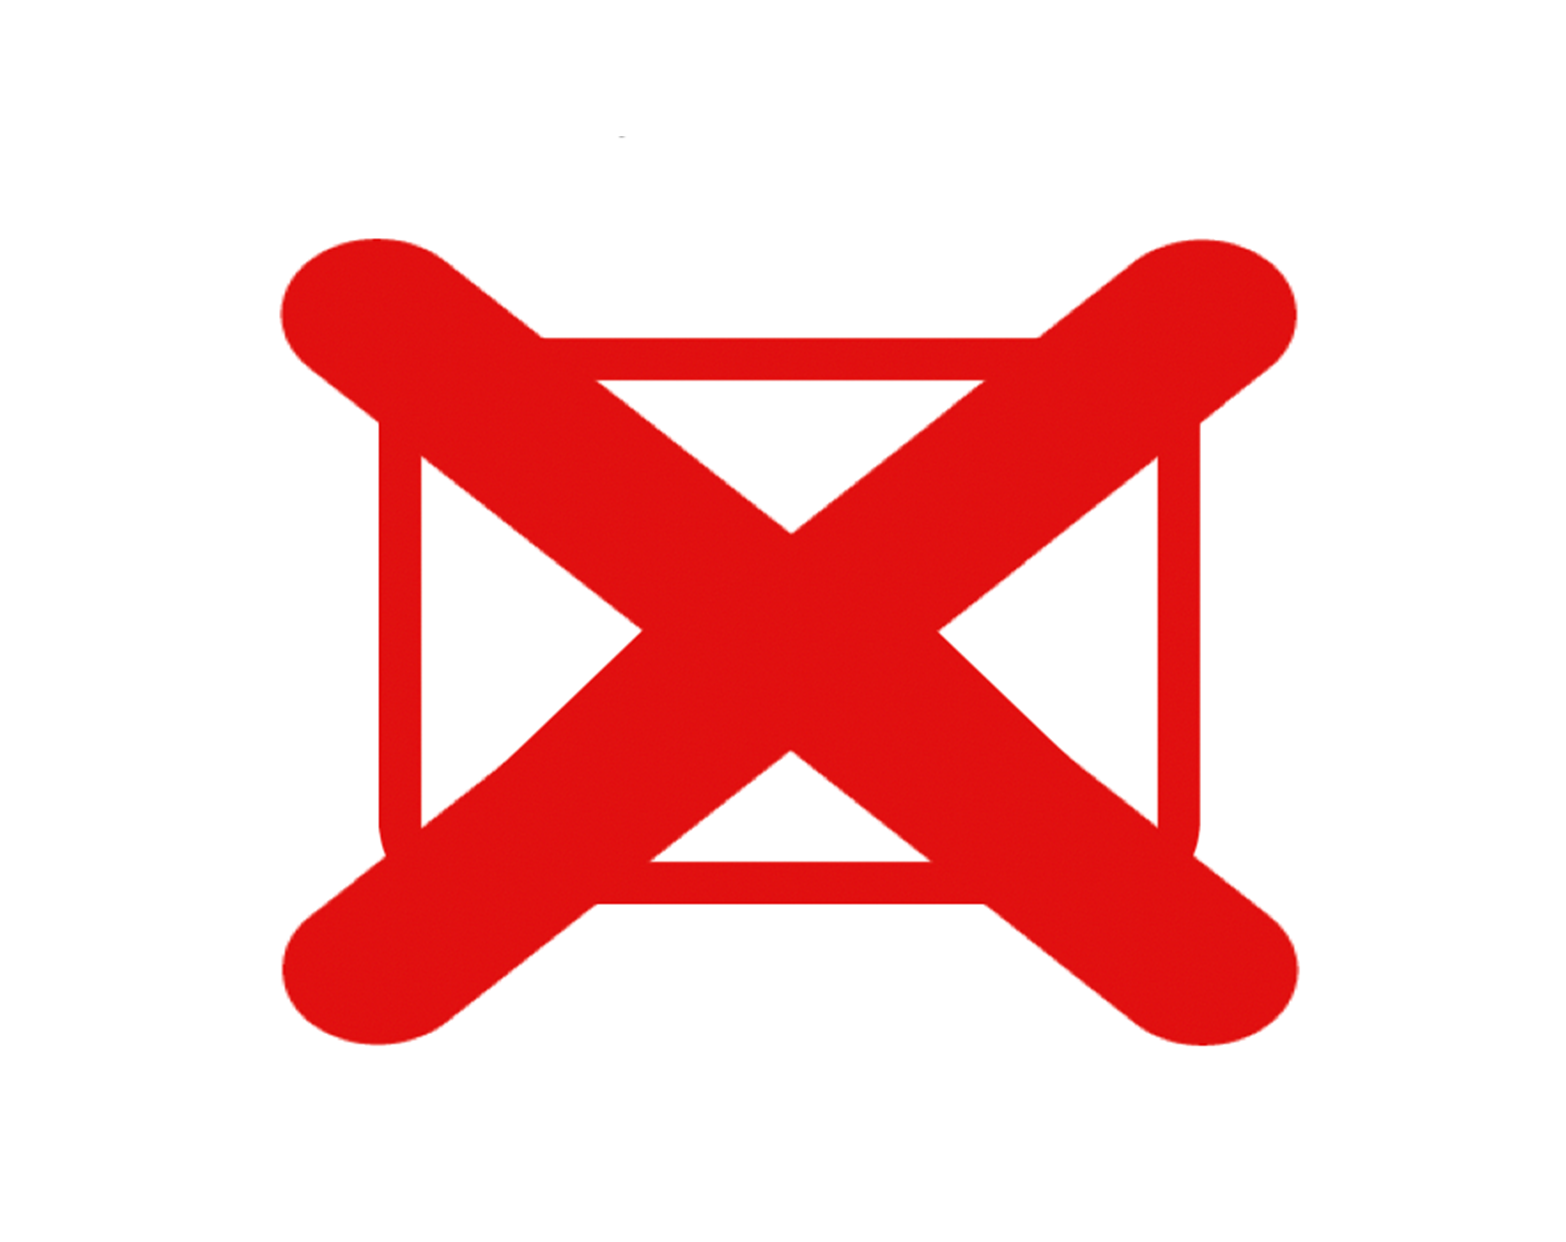 Too scary…I don't want to block my emails. - A guided journey to full protection, under a p=reject DMARC policy, stops the accidental, and possibly disastrous, blocking of legitimate emails.